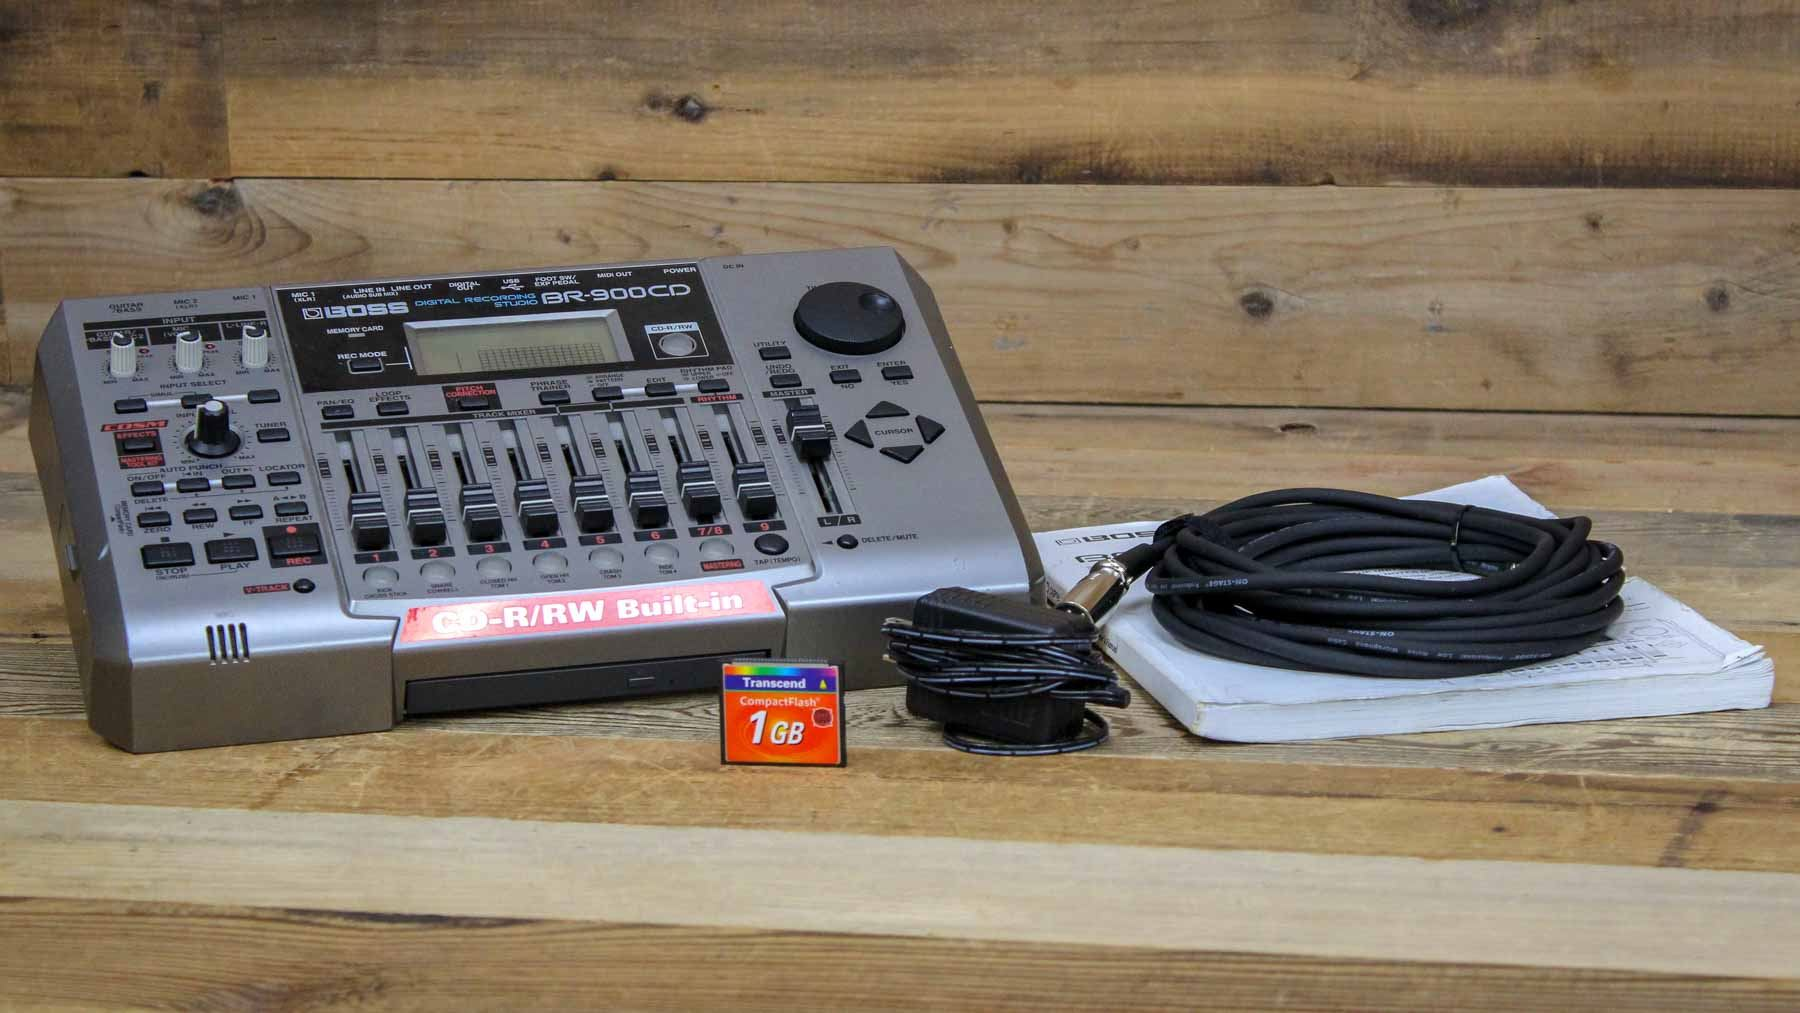 Boss BR 900CD Digital 8 Track Multitrack Recorder W Cable